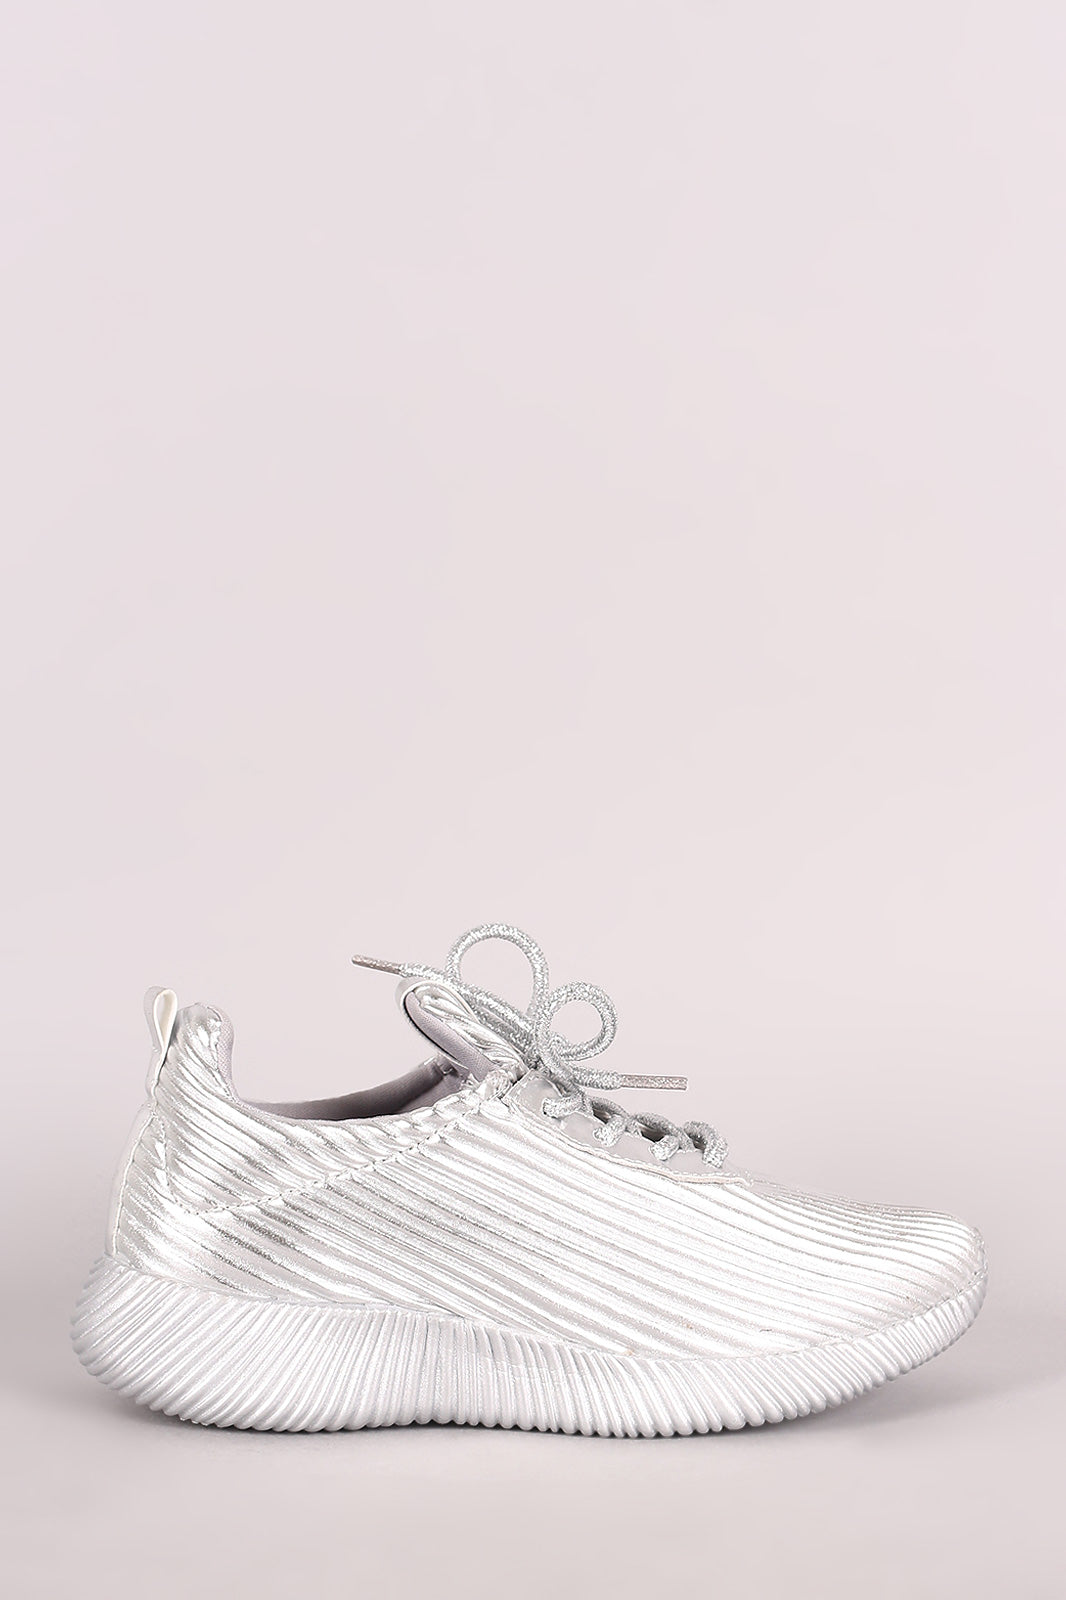 Ridgy Textured Sneaker For Women By Qupid | Shop Women's Fashion Lovely Stylish Round Toe Silhouette Ridgy Textured Vegan Leather Upper Ridgy Textured Lace Up Closure Sneaker